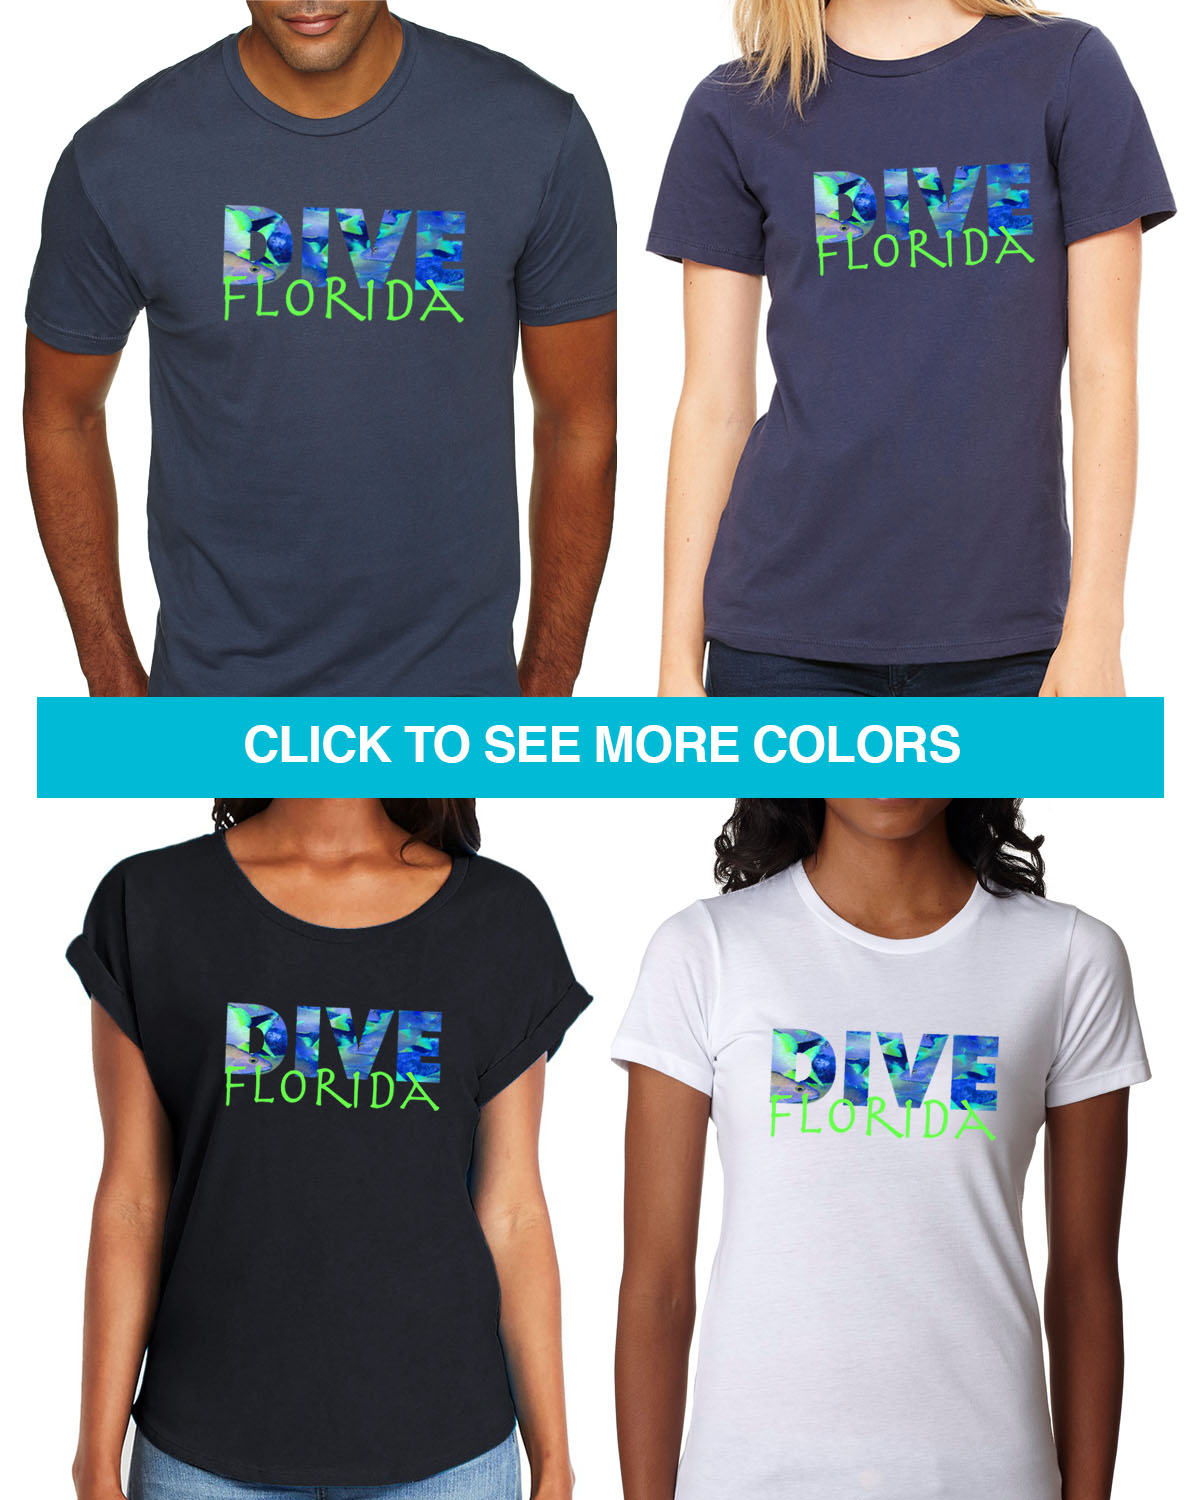 Short sleeve Dive Florida t-shirt for men and women